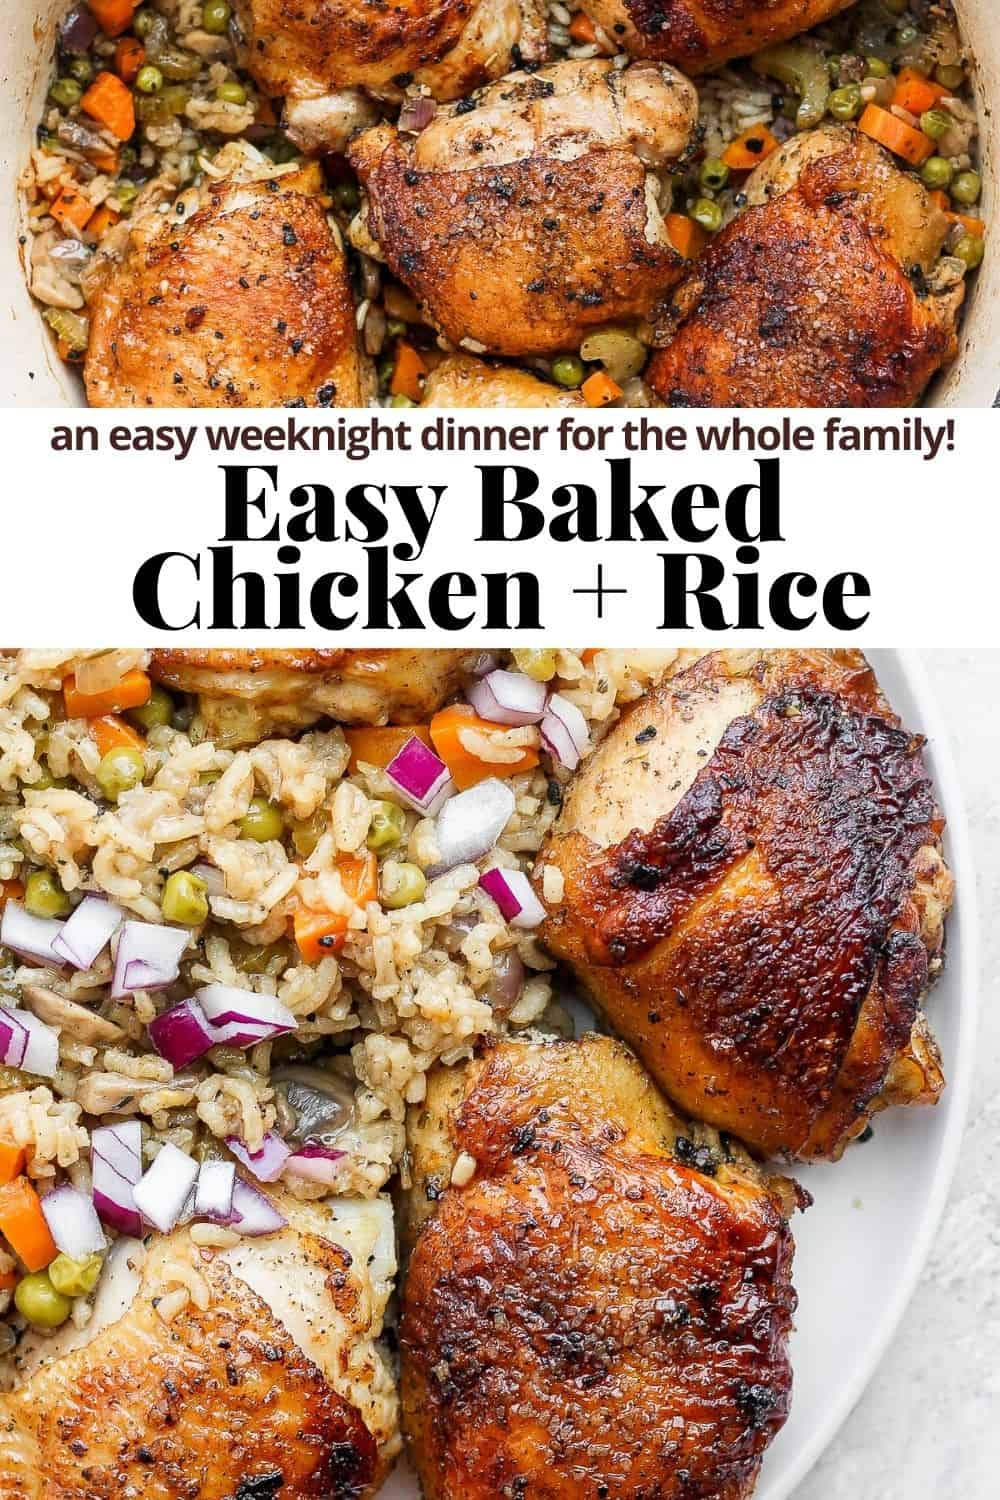 Pinterest image for baked chicken and rice.